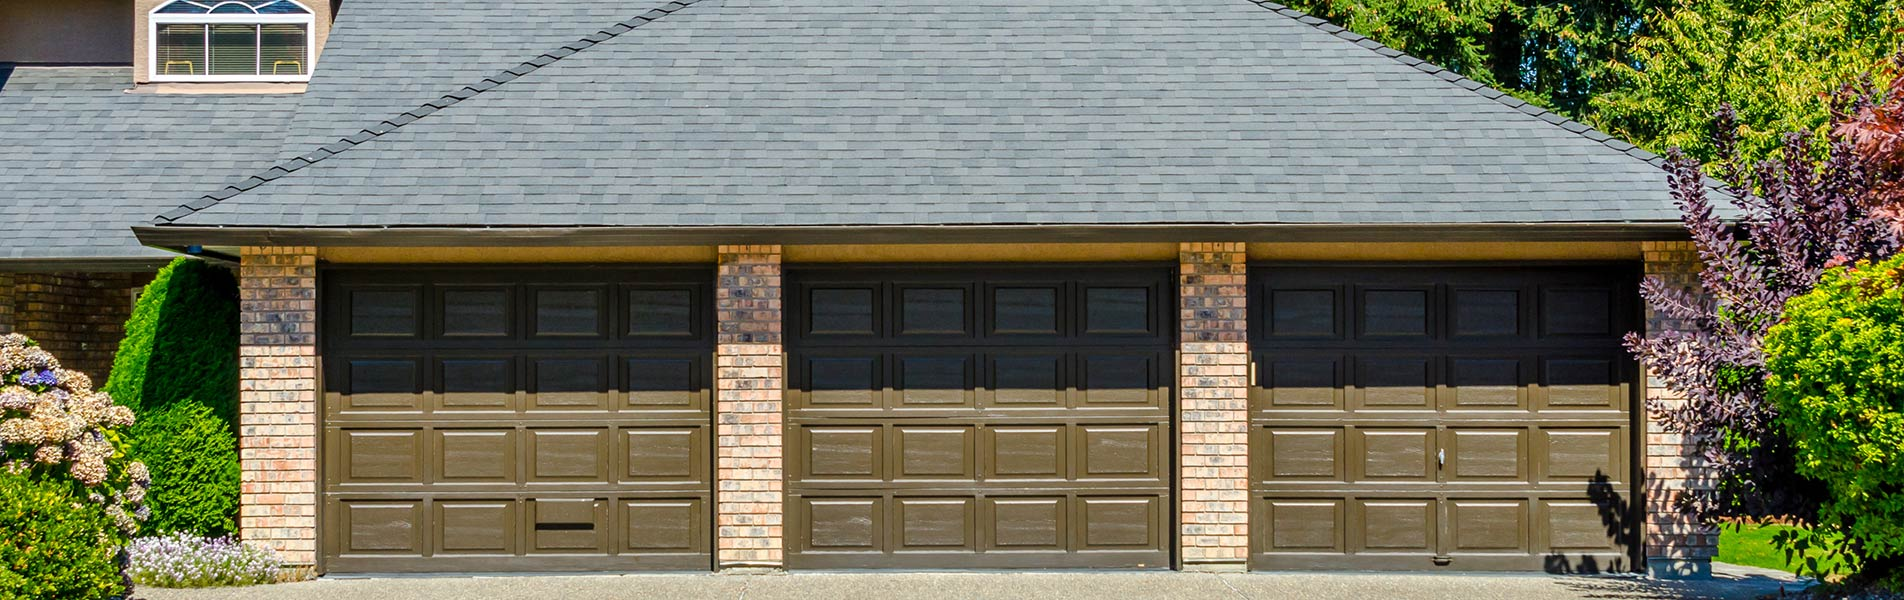 Two Guys Garage Doors Chicago, IL 773-541-8009